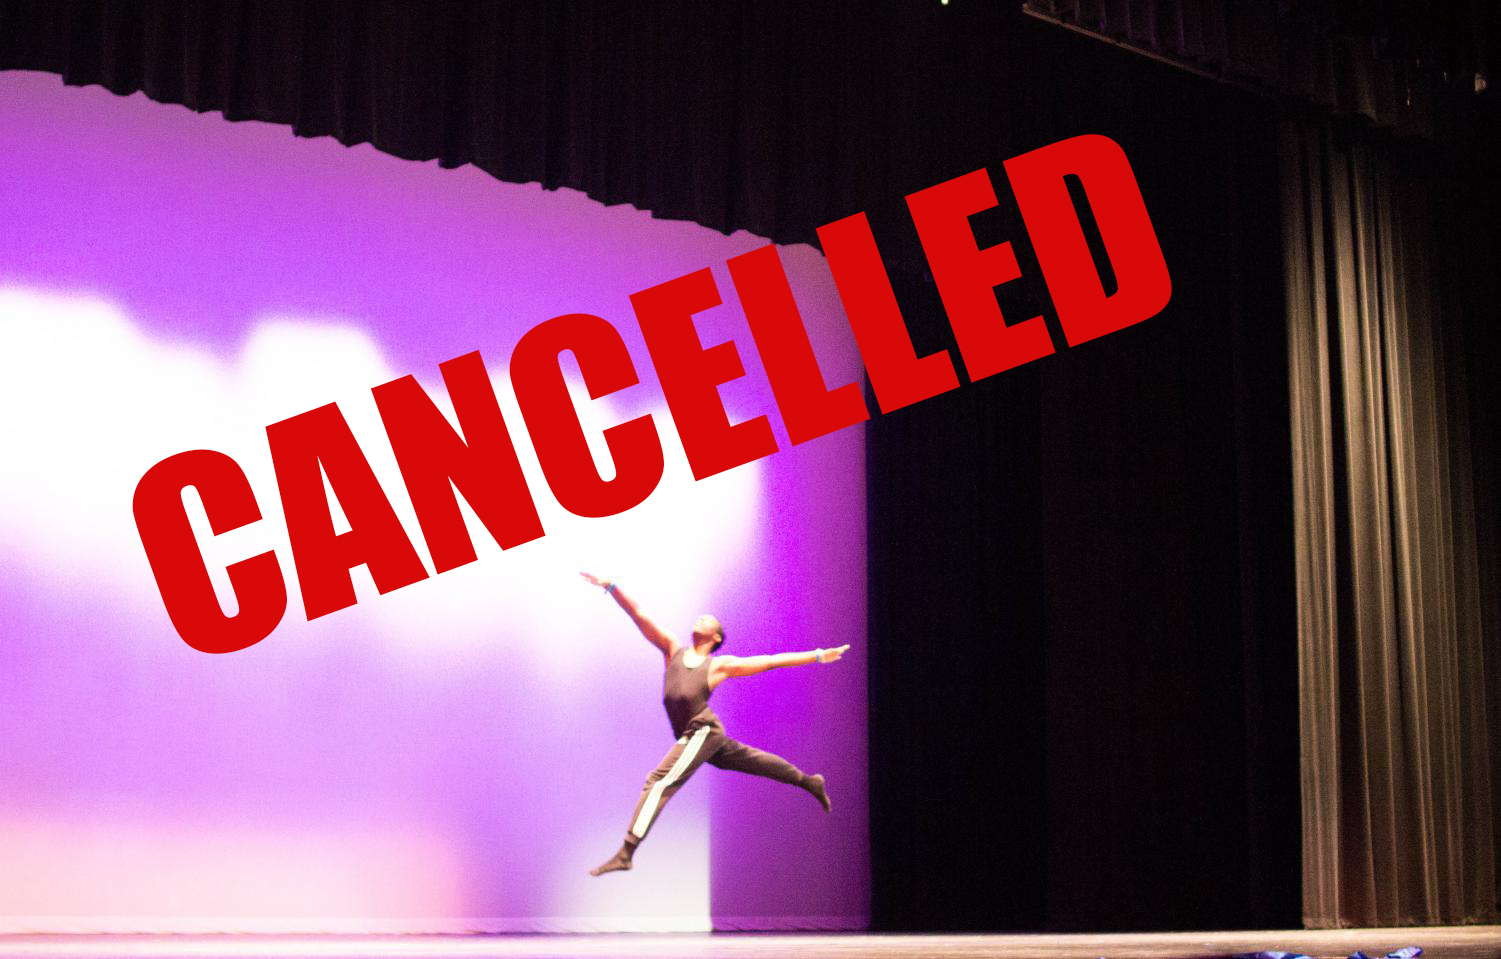 Last year, Carla Lujan won the first So You Think You Can Dance. This year, the program was canceled due to lack of interest.